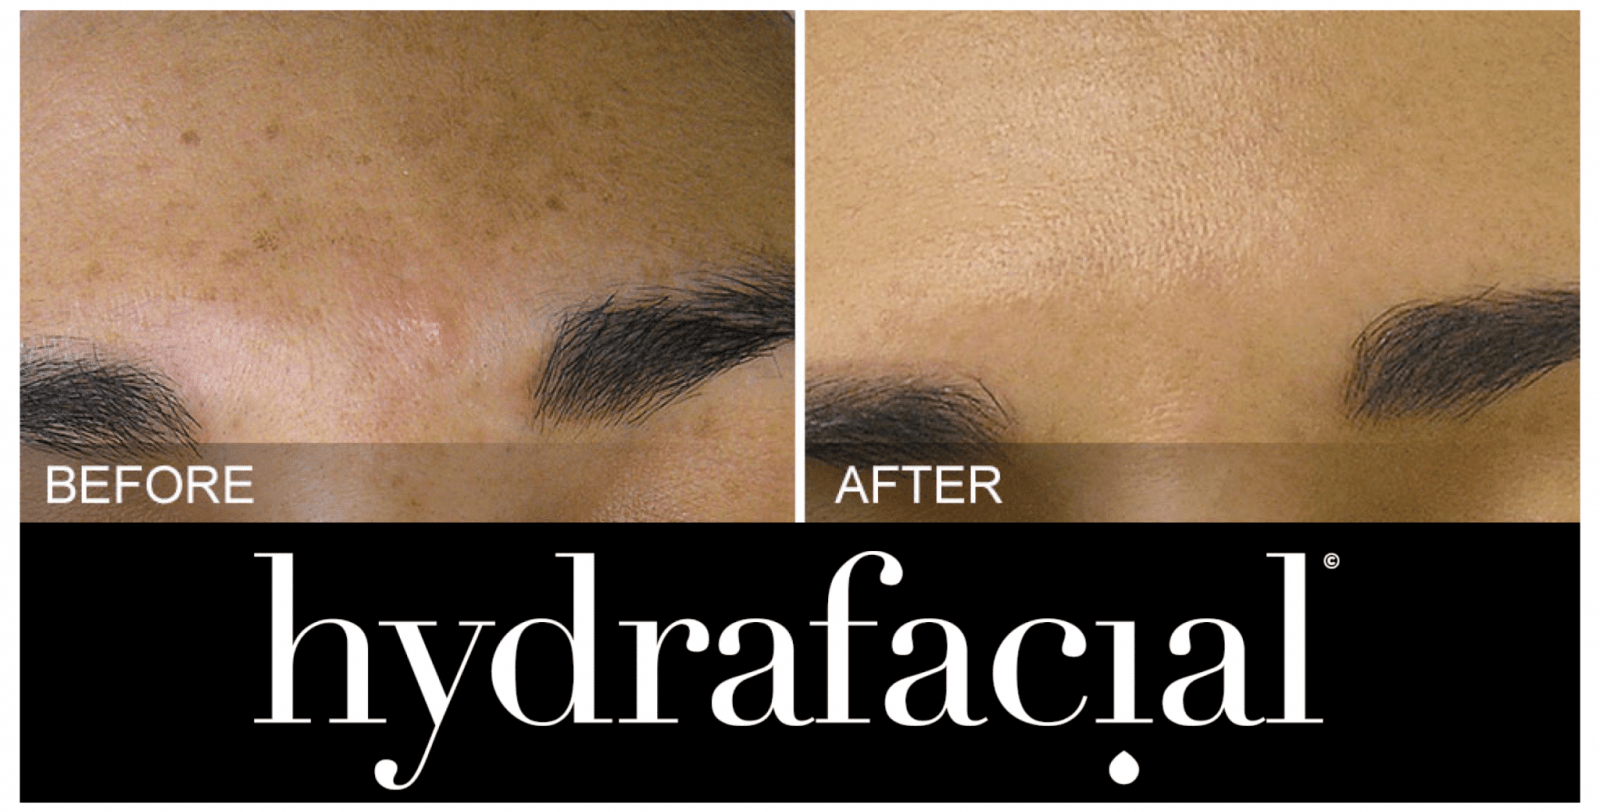 HydraFacial before and after